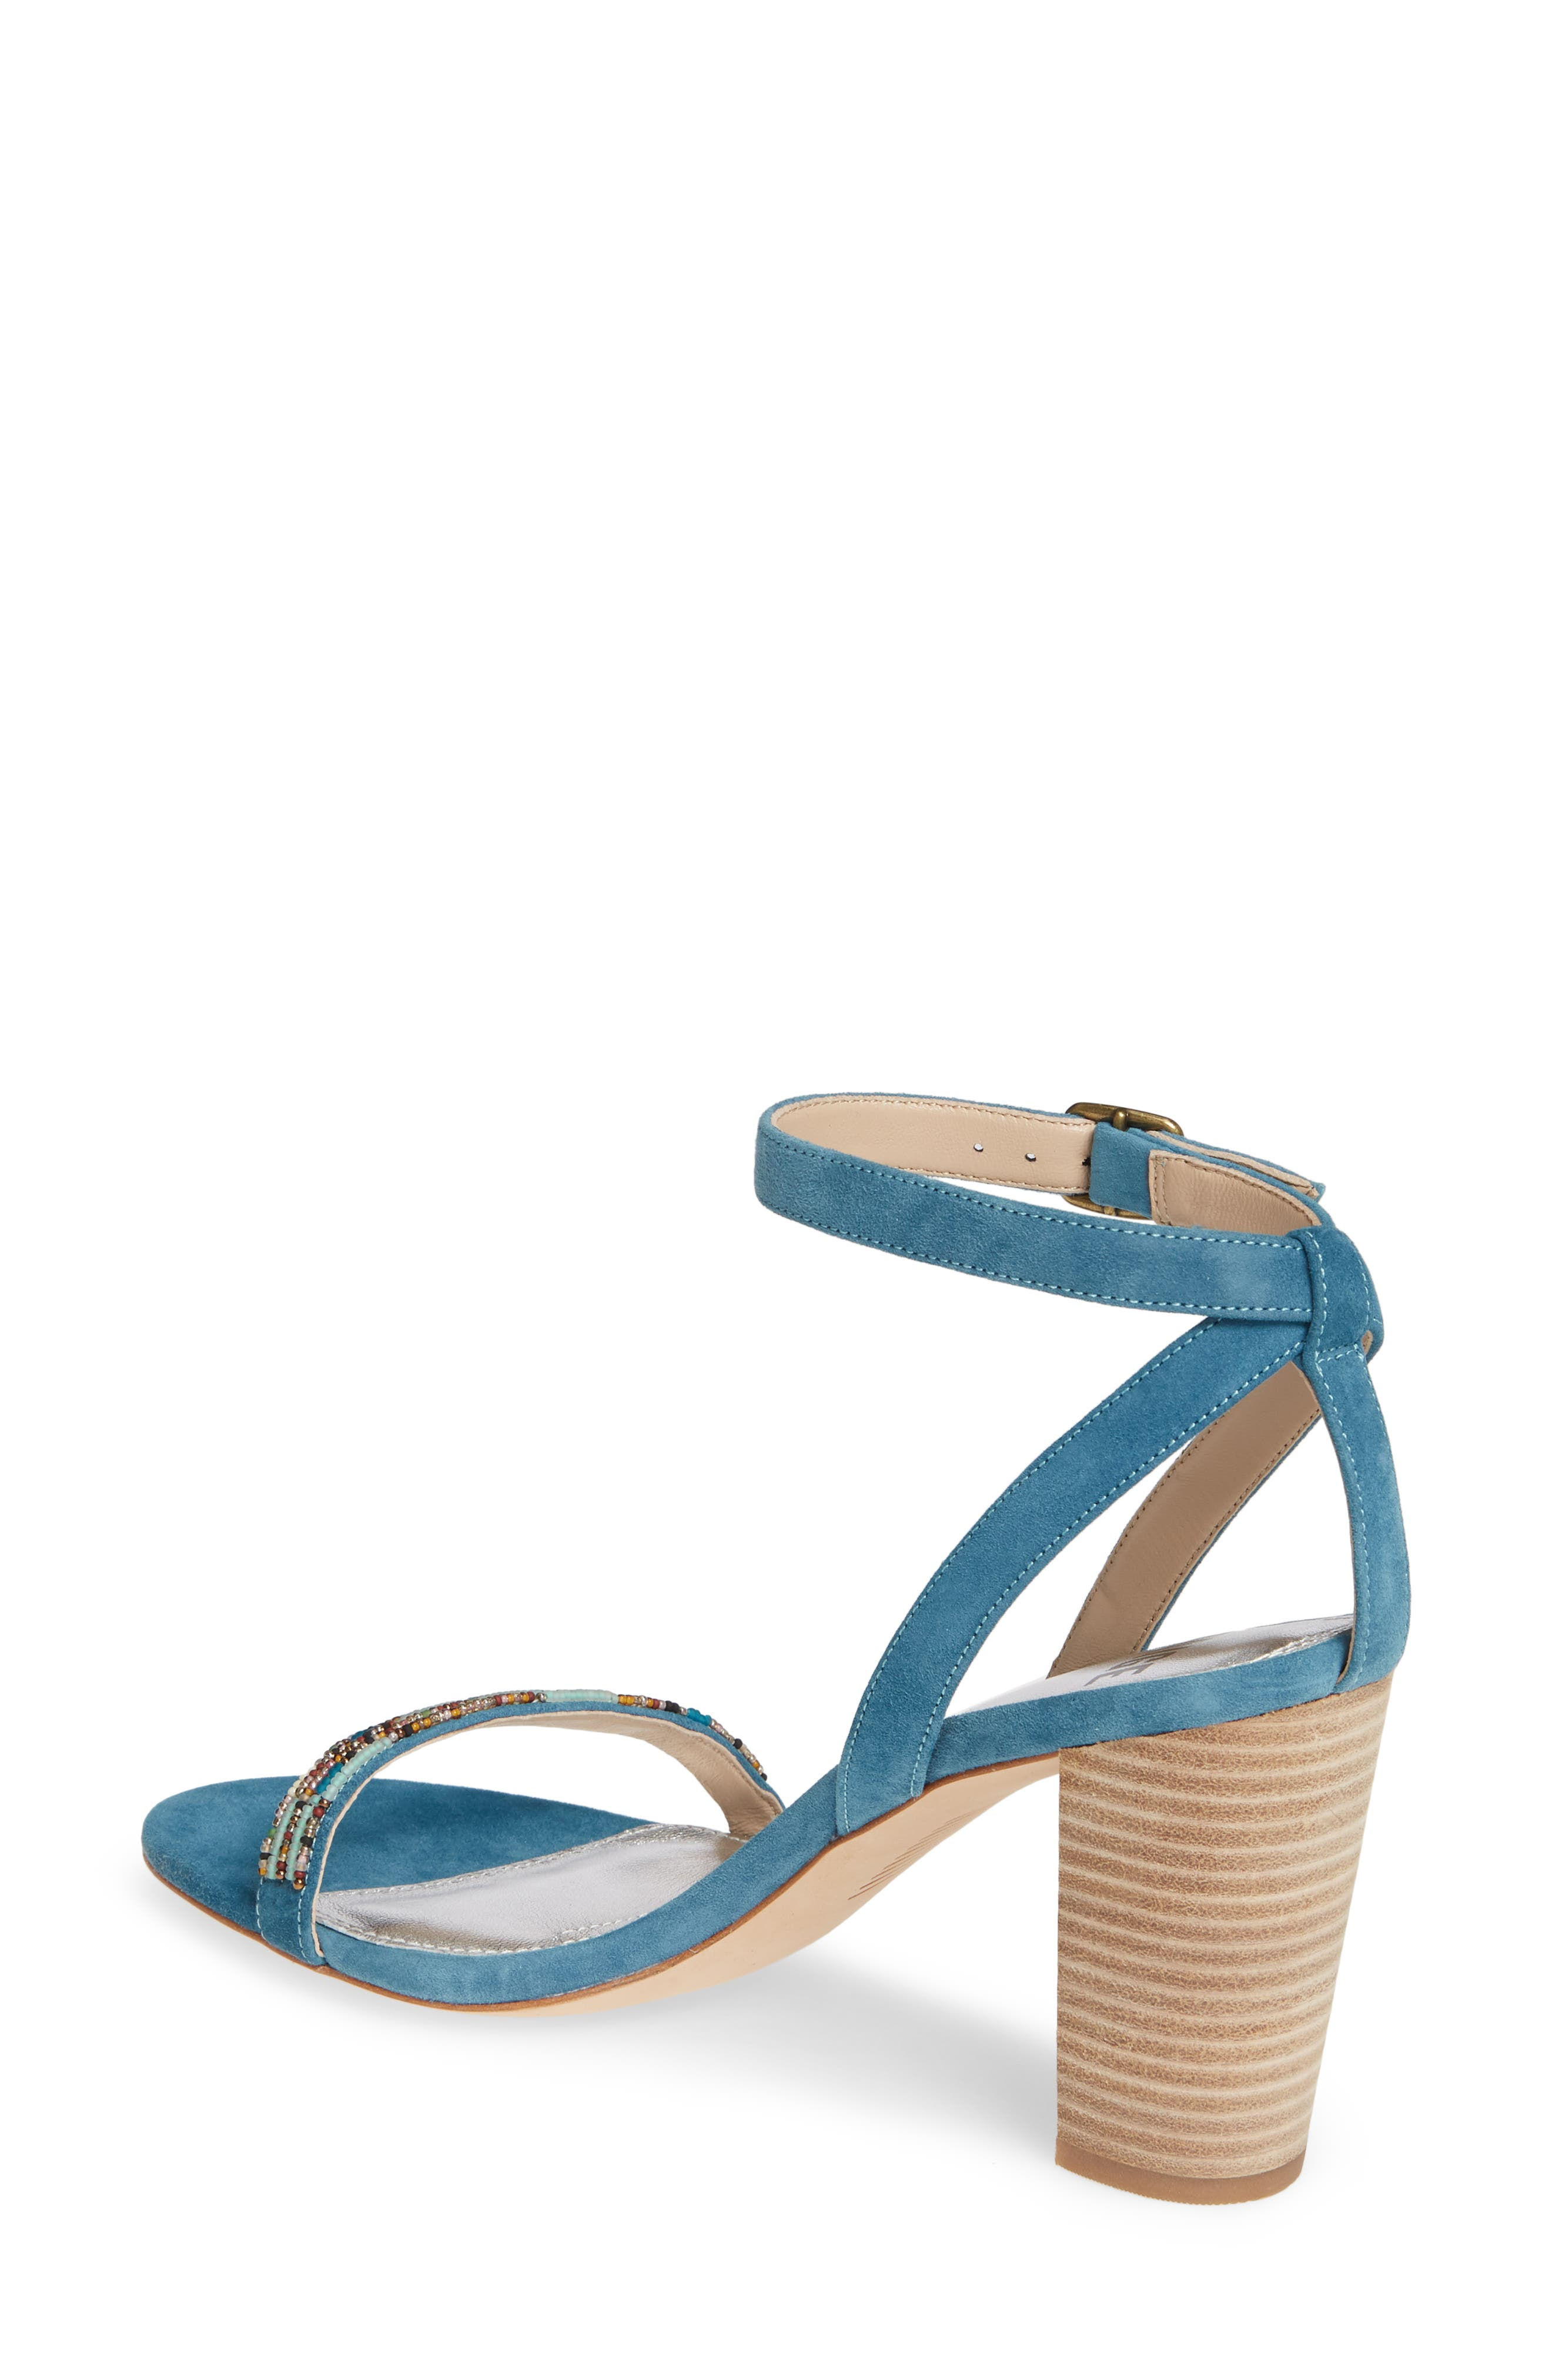 PAIGE, Gabriella Beaded Sandal, Alternate thumbnail 2, color, BLUE